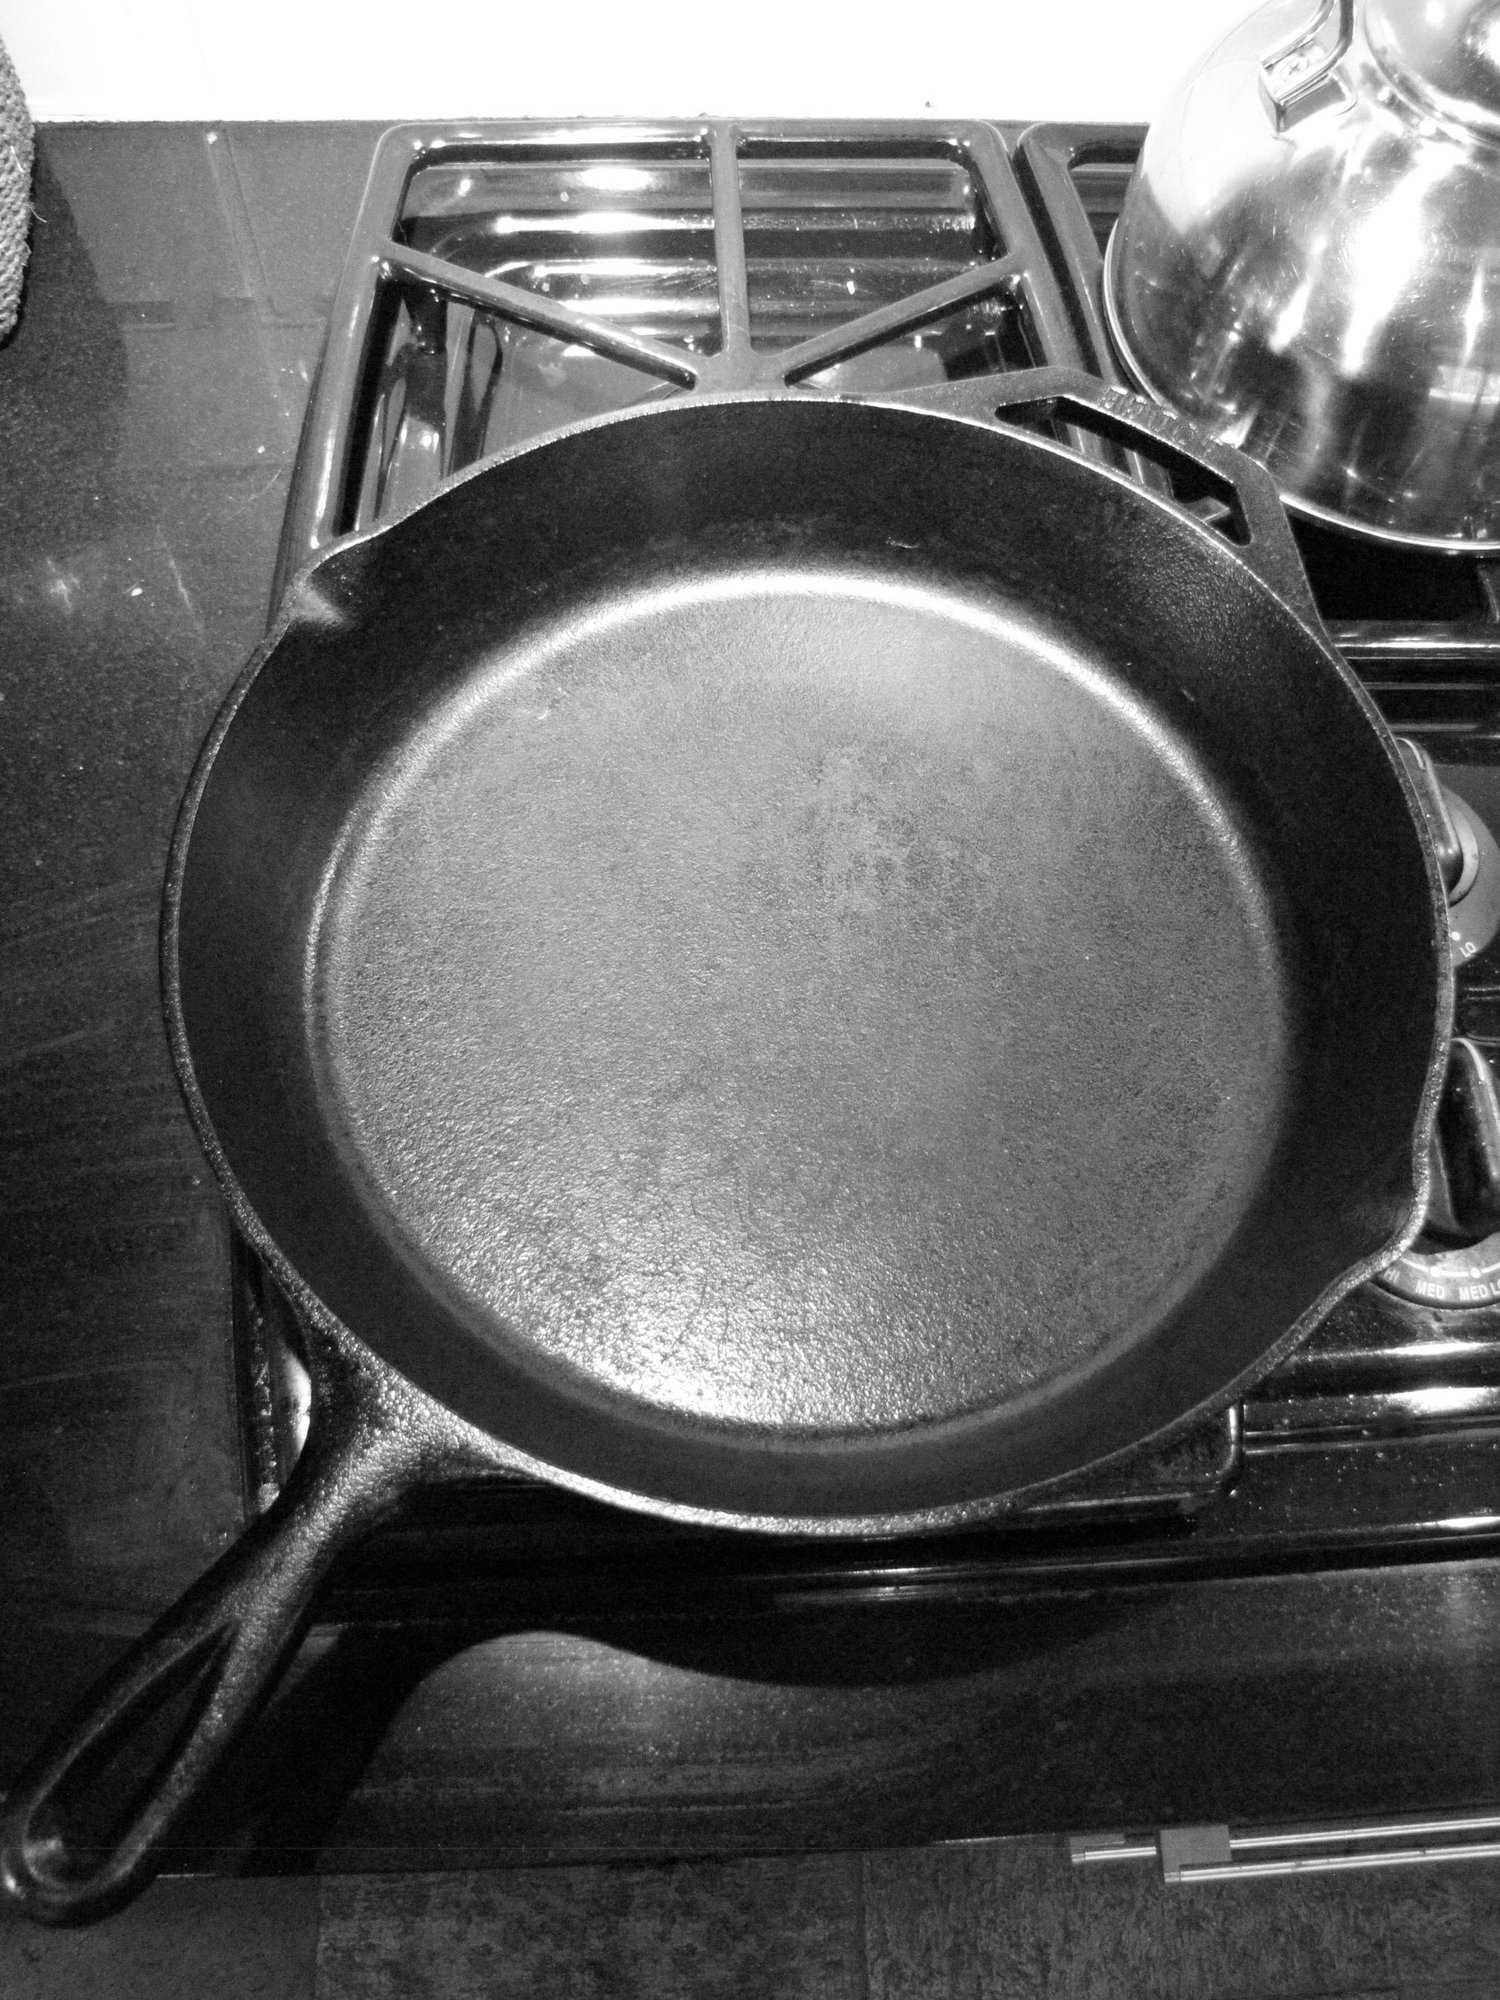 How Non-Stick Cookware Can Be Toxic & How To Avoid It